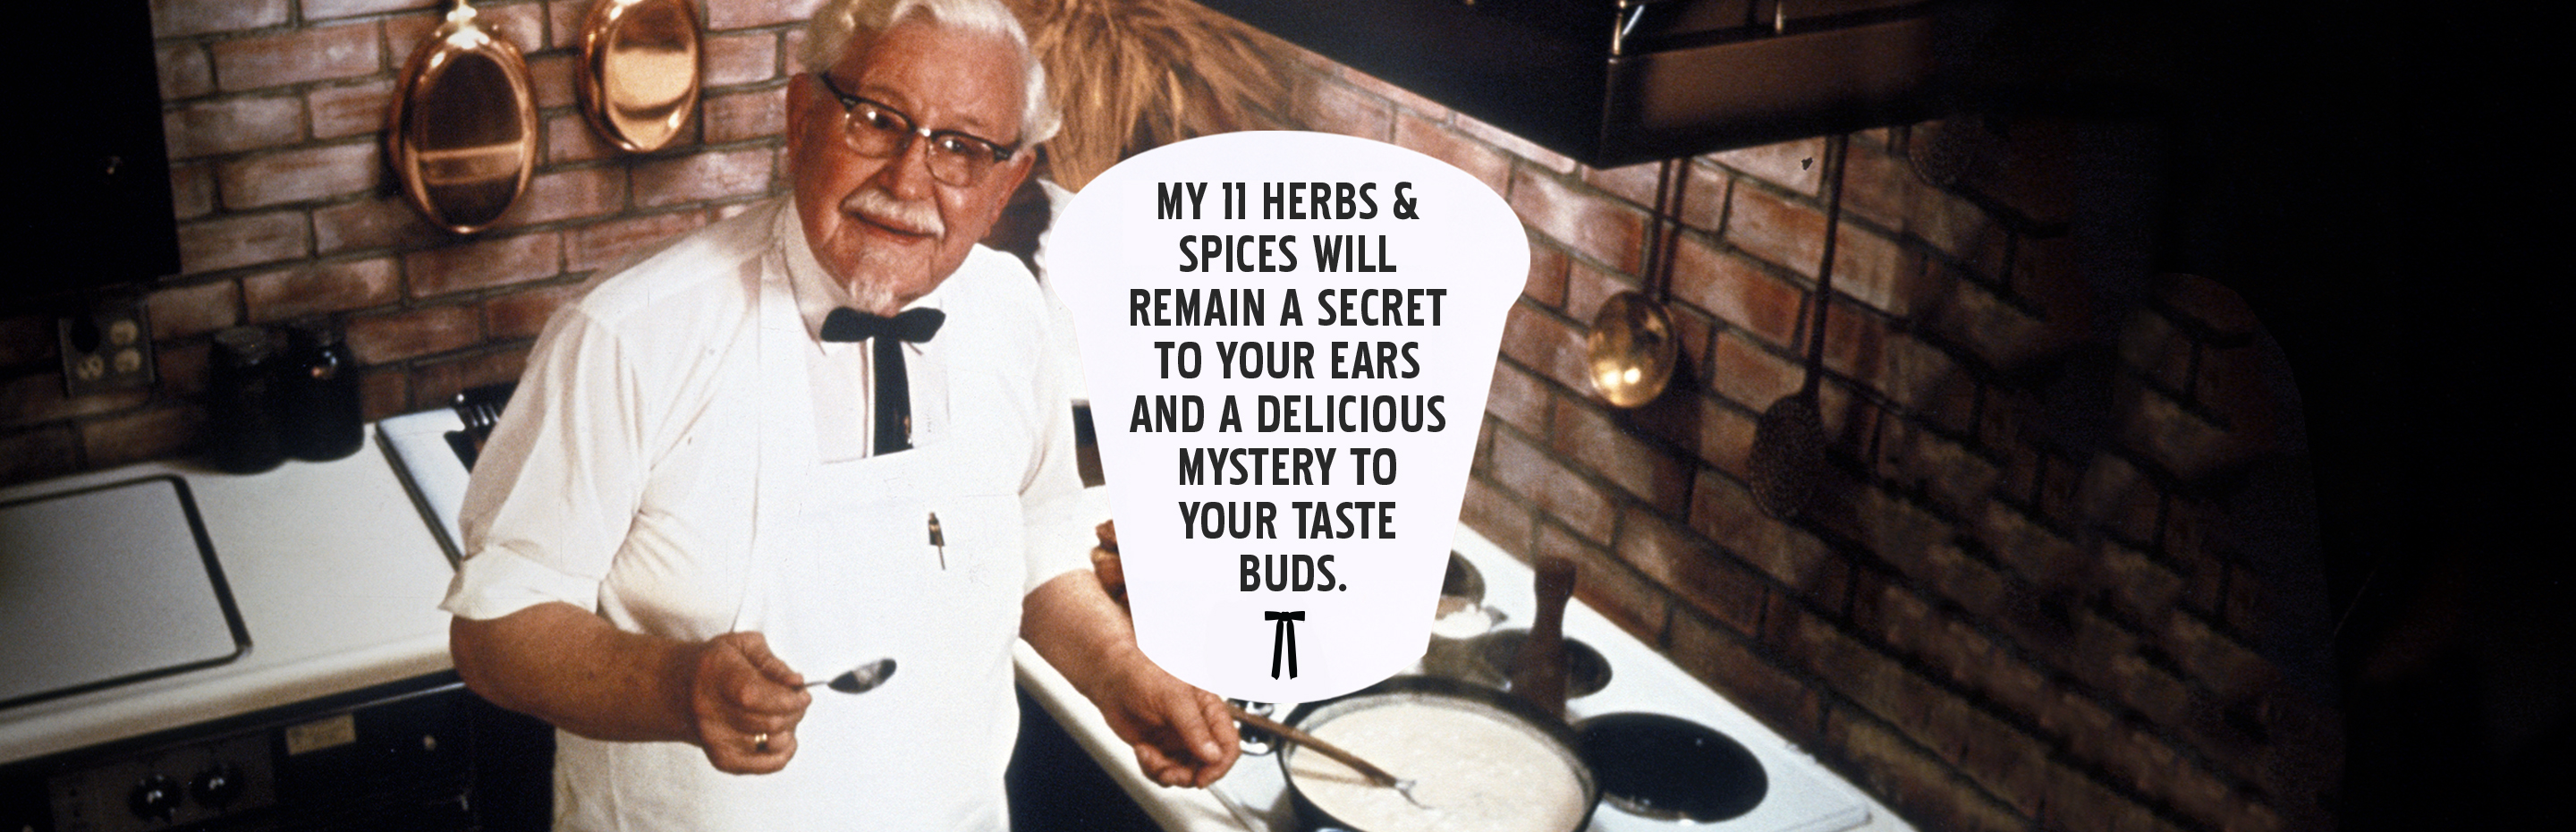 My 11 herbs & spices will remain a secret to your ears and a delicious mystery to your taste buds.